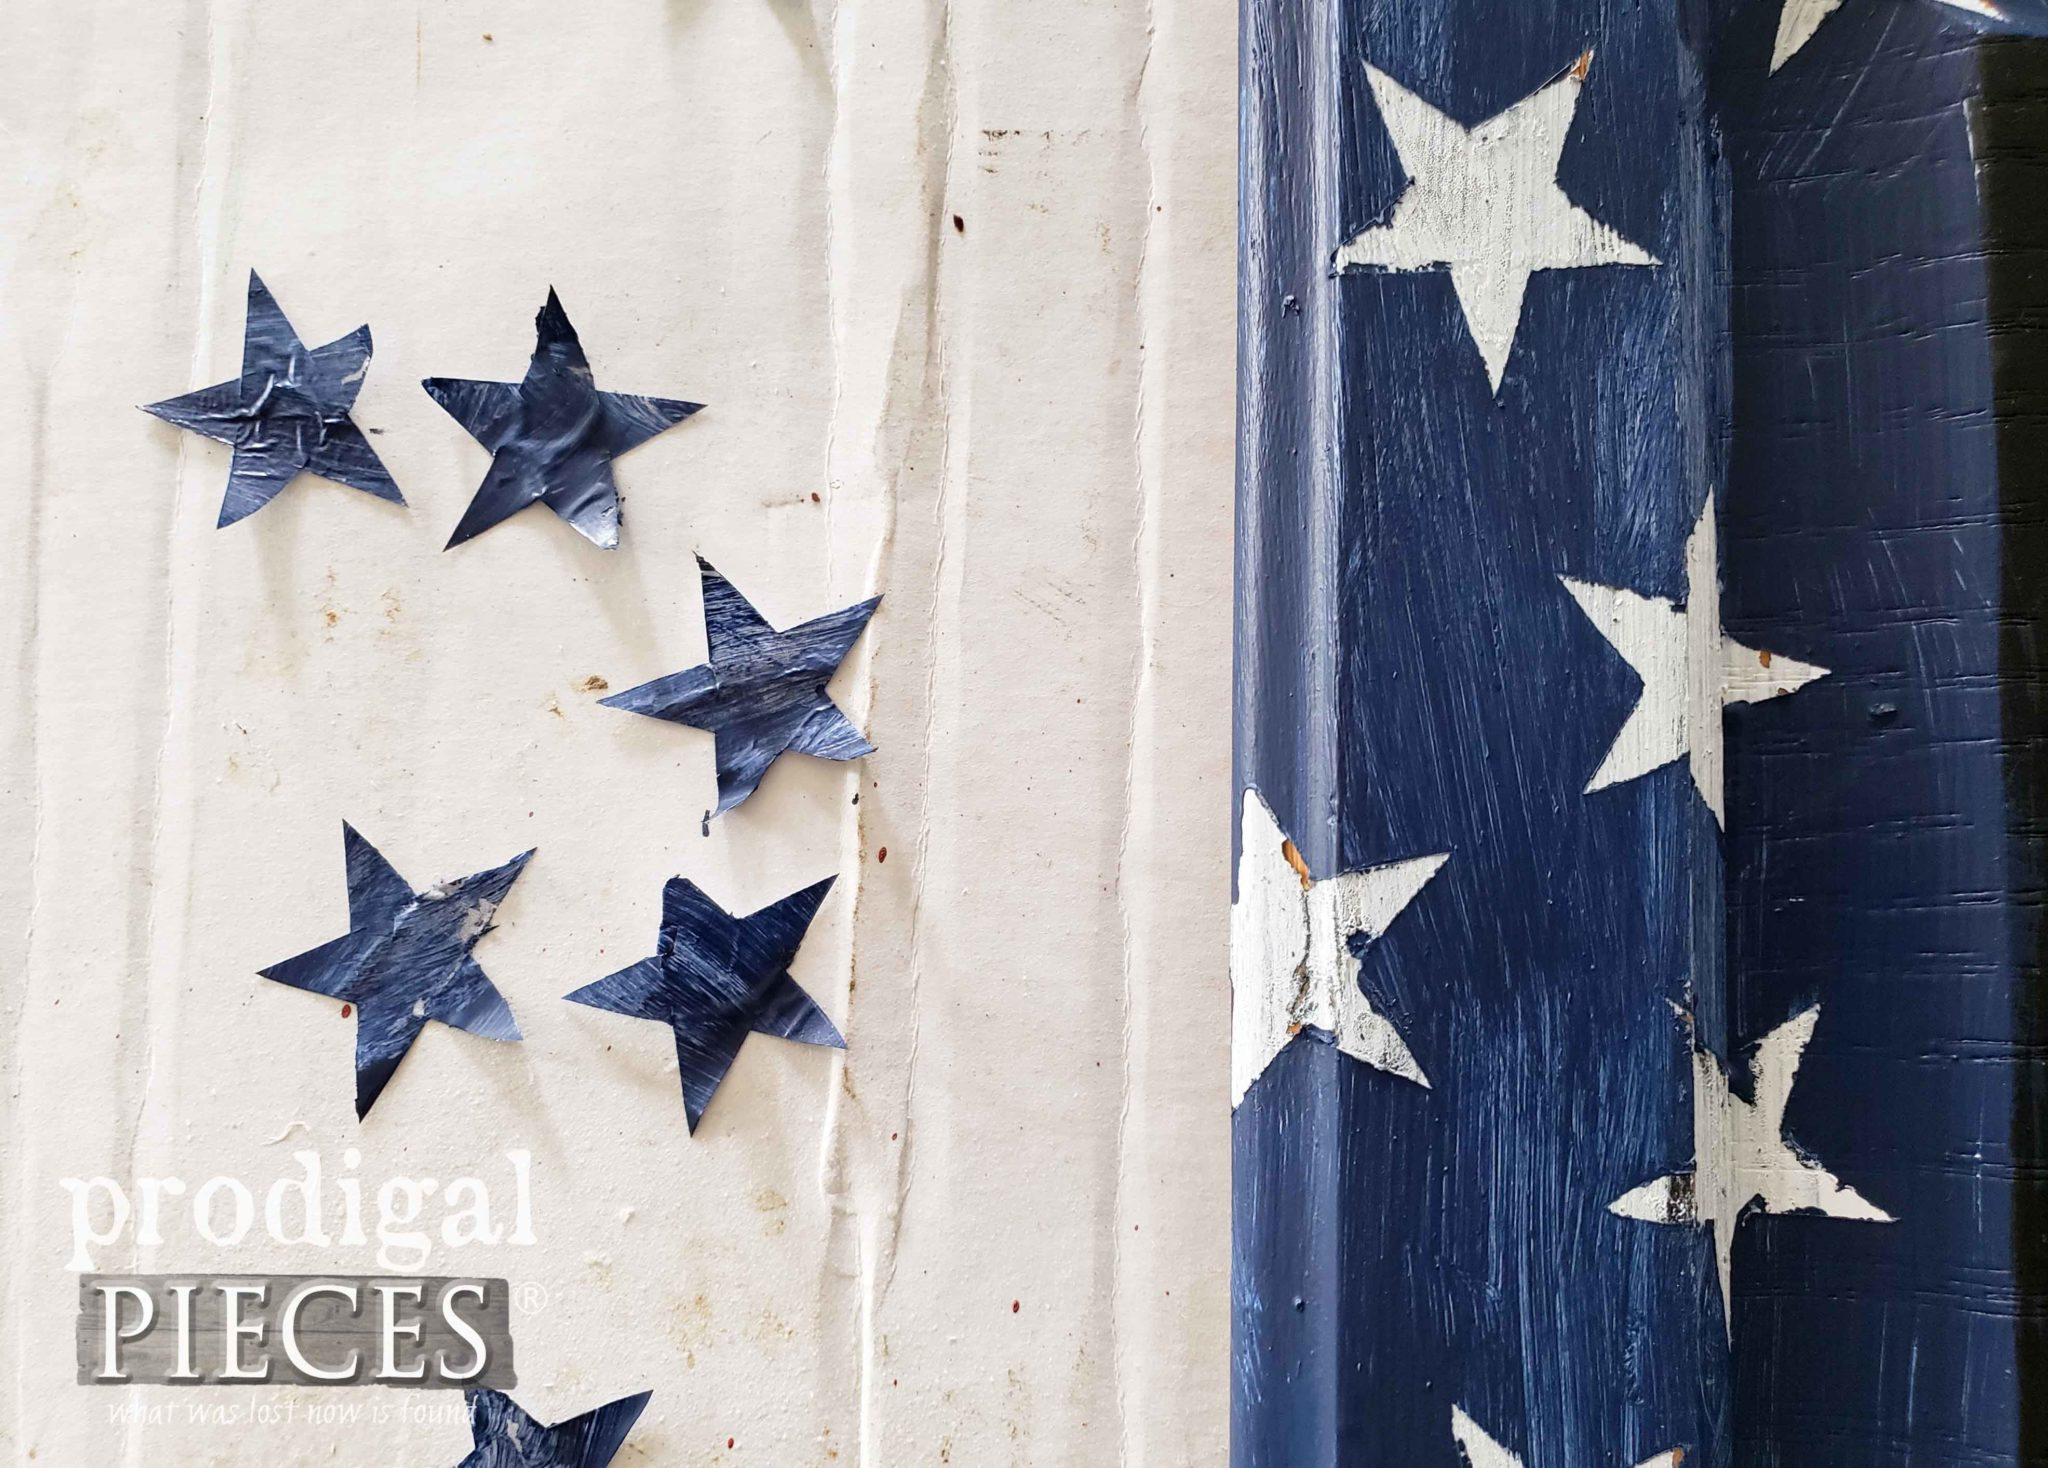 Removing Reverse Stencil Stars from DIY 4th of July Sign by Prodigal Pieces | prodigalpieces.com #prodigalpieces #diy #home #homedecor #4thofjuly